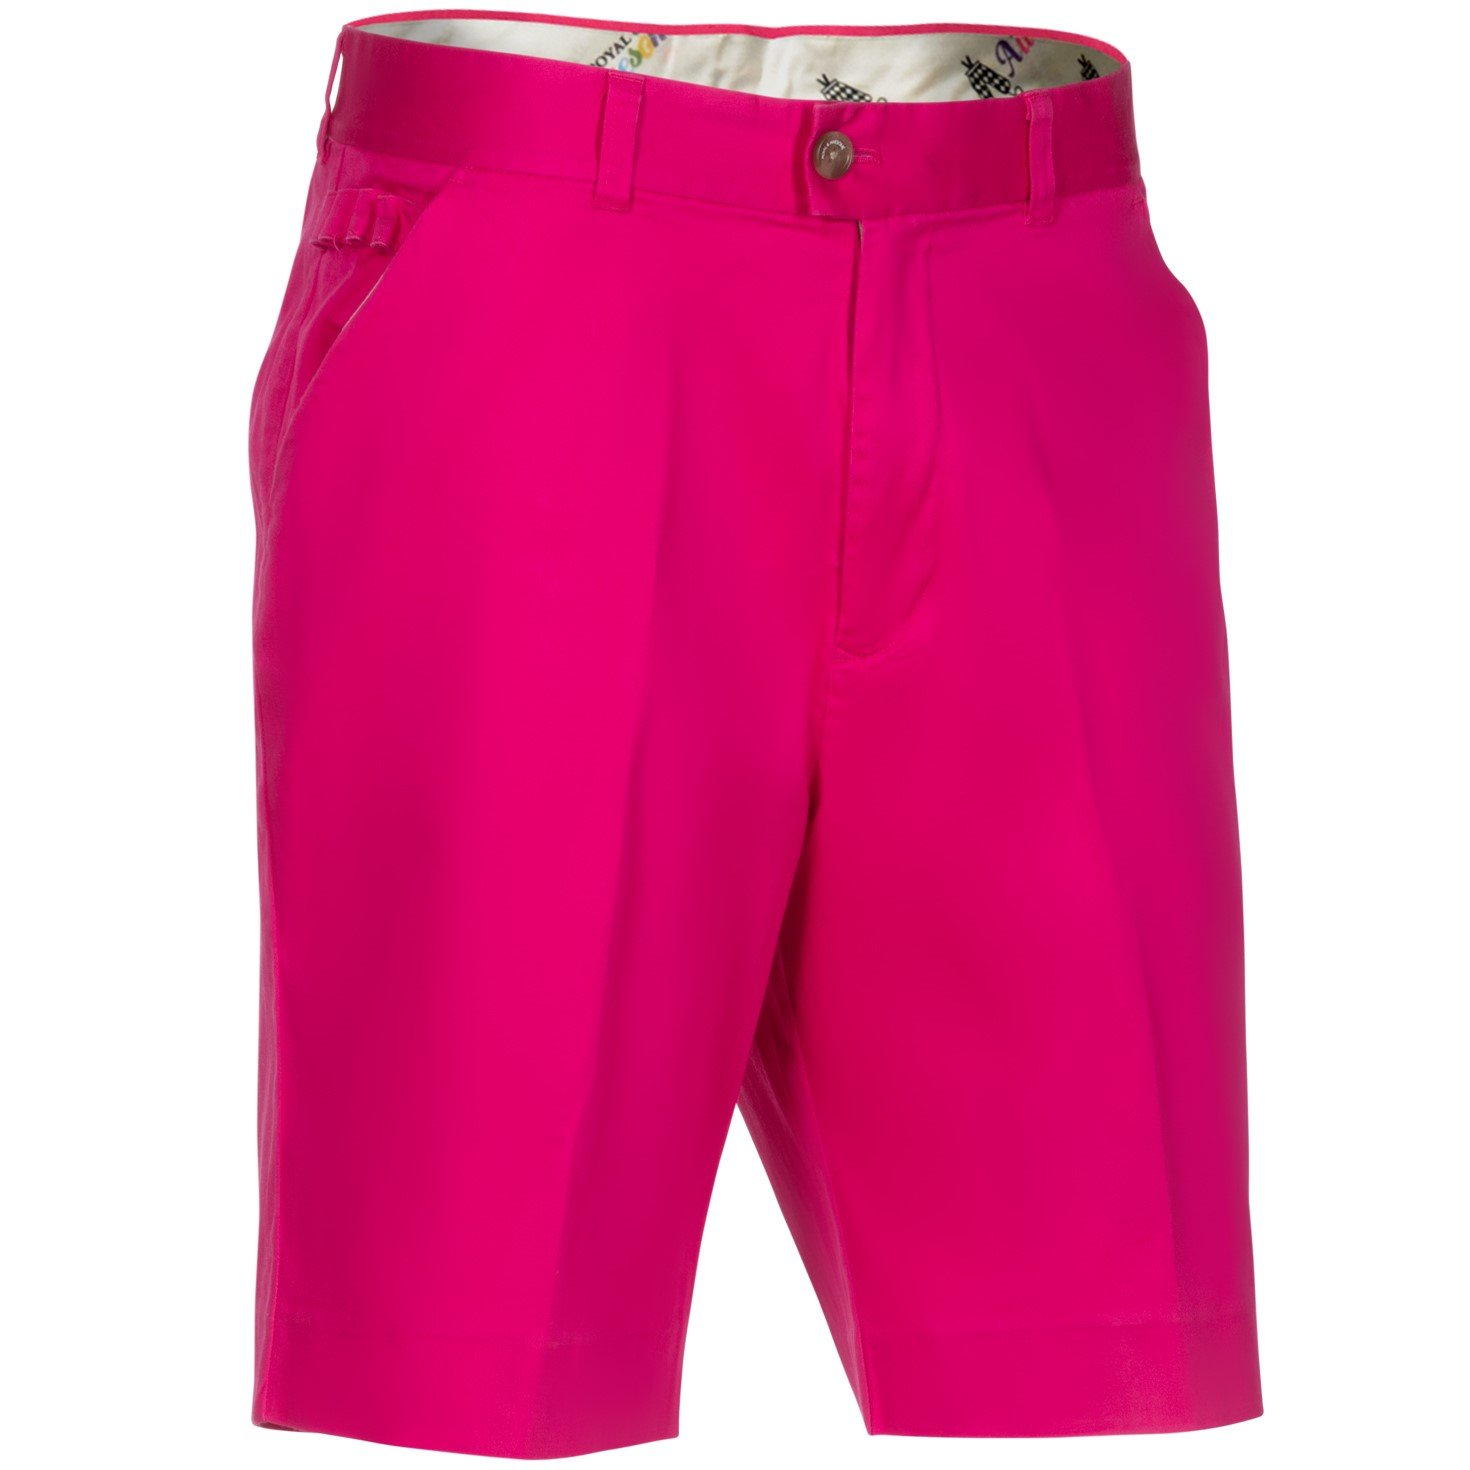 Royal & Awesome Men's Golf Shorts, Pink Ticket, 32'' Waist-81 cm by Royal & Awesome